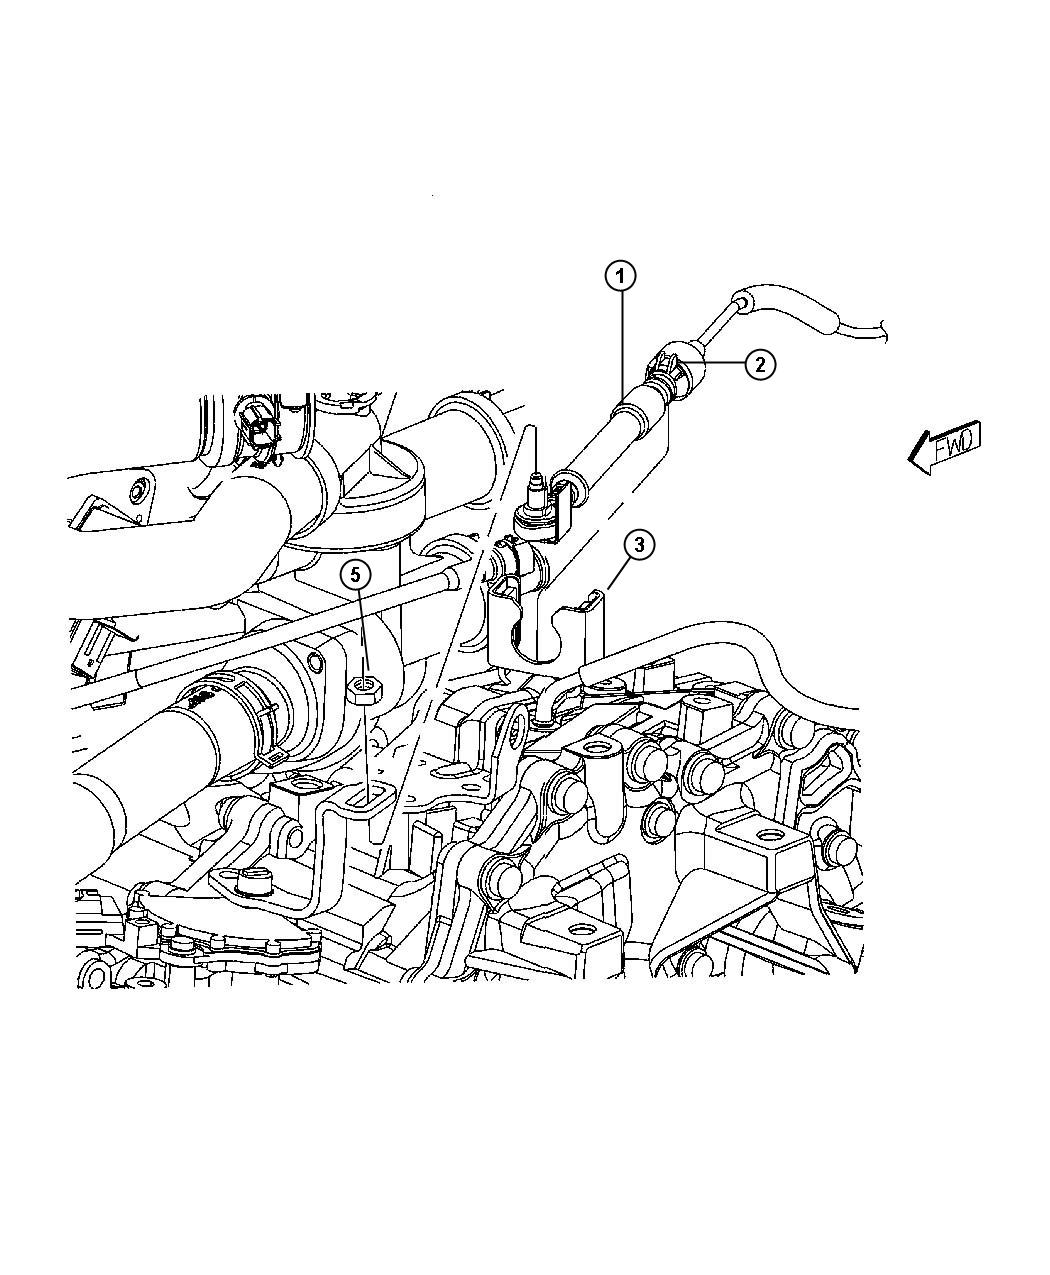 Dodge Caliber Cable Shift Used After 2 22 07 Used